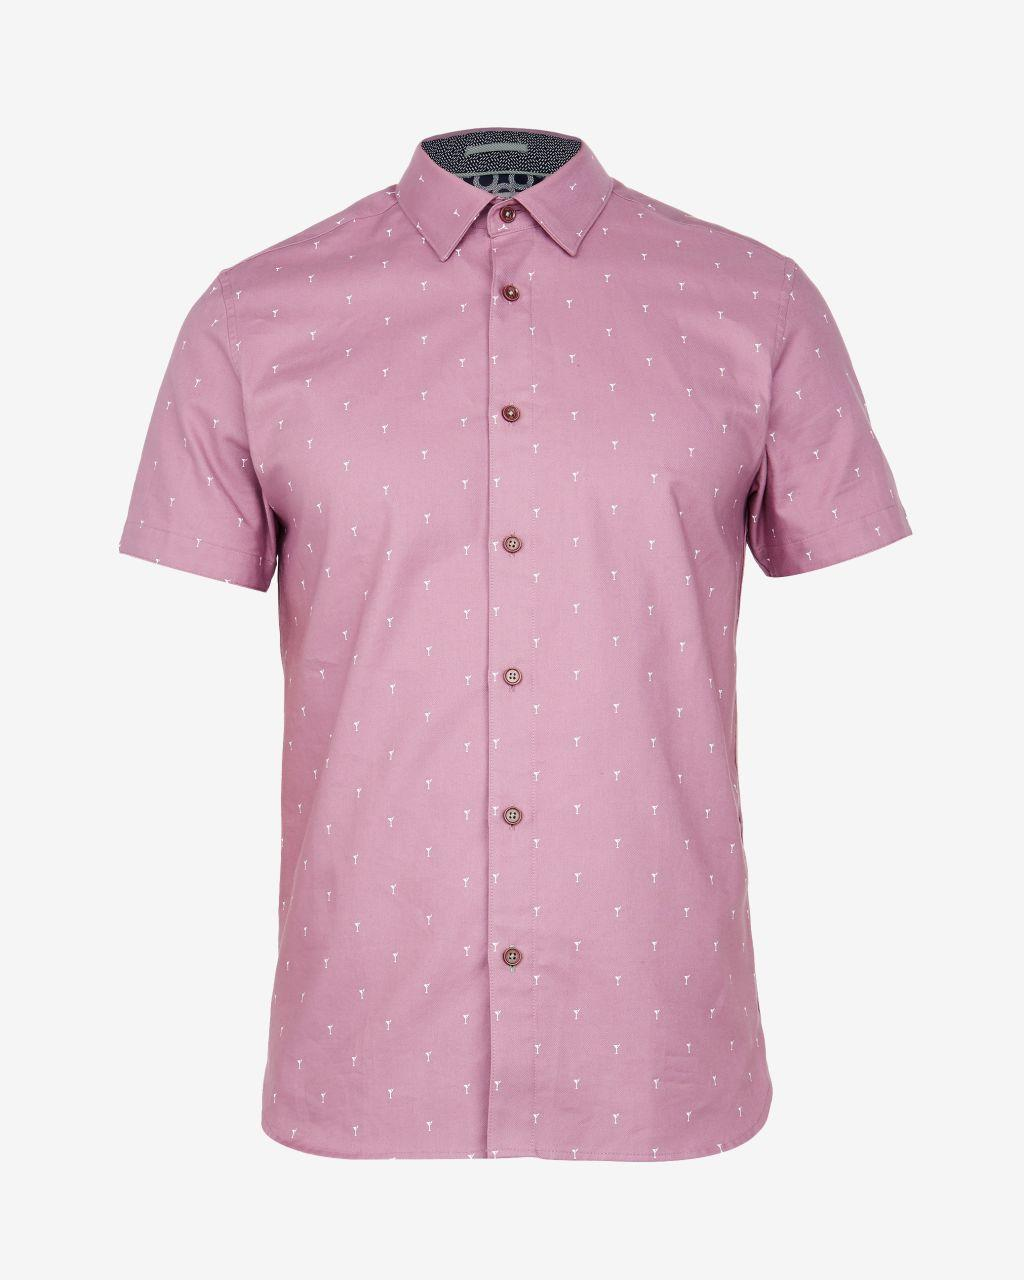 Ted Baker Cocktail Print Cotton Shirt in Pink for Men